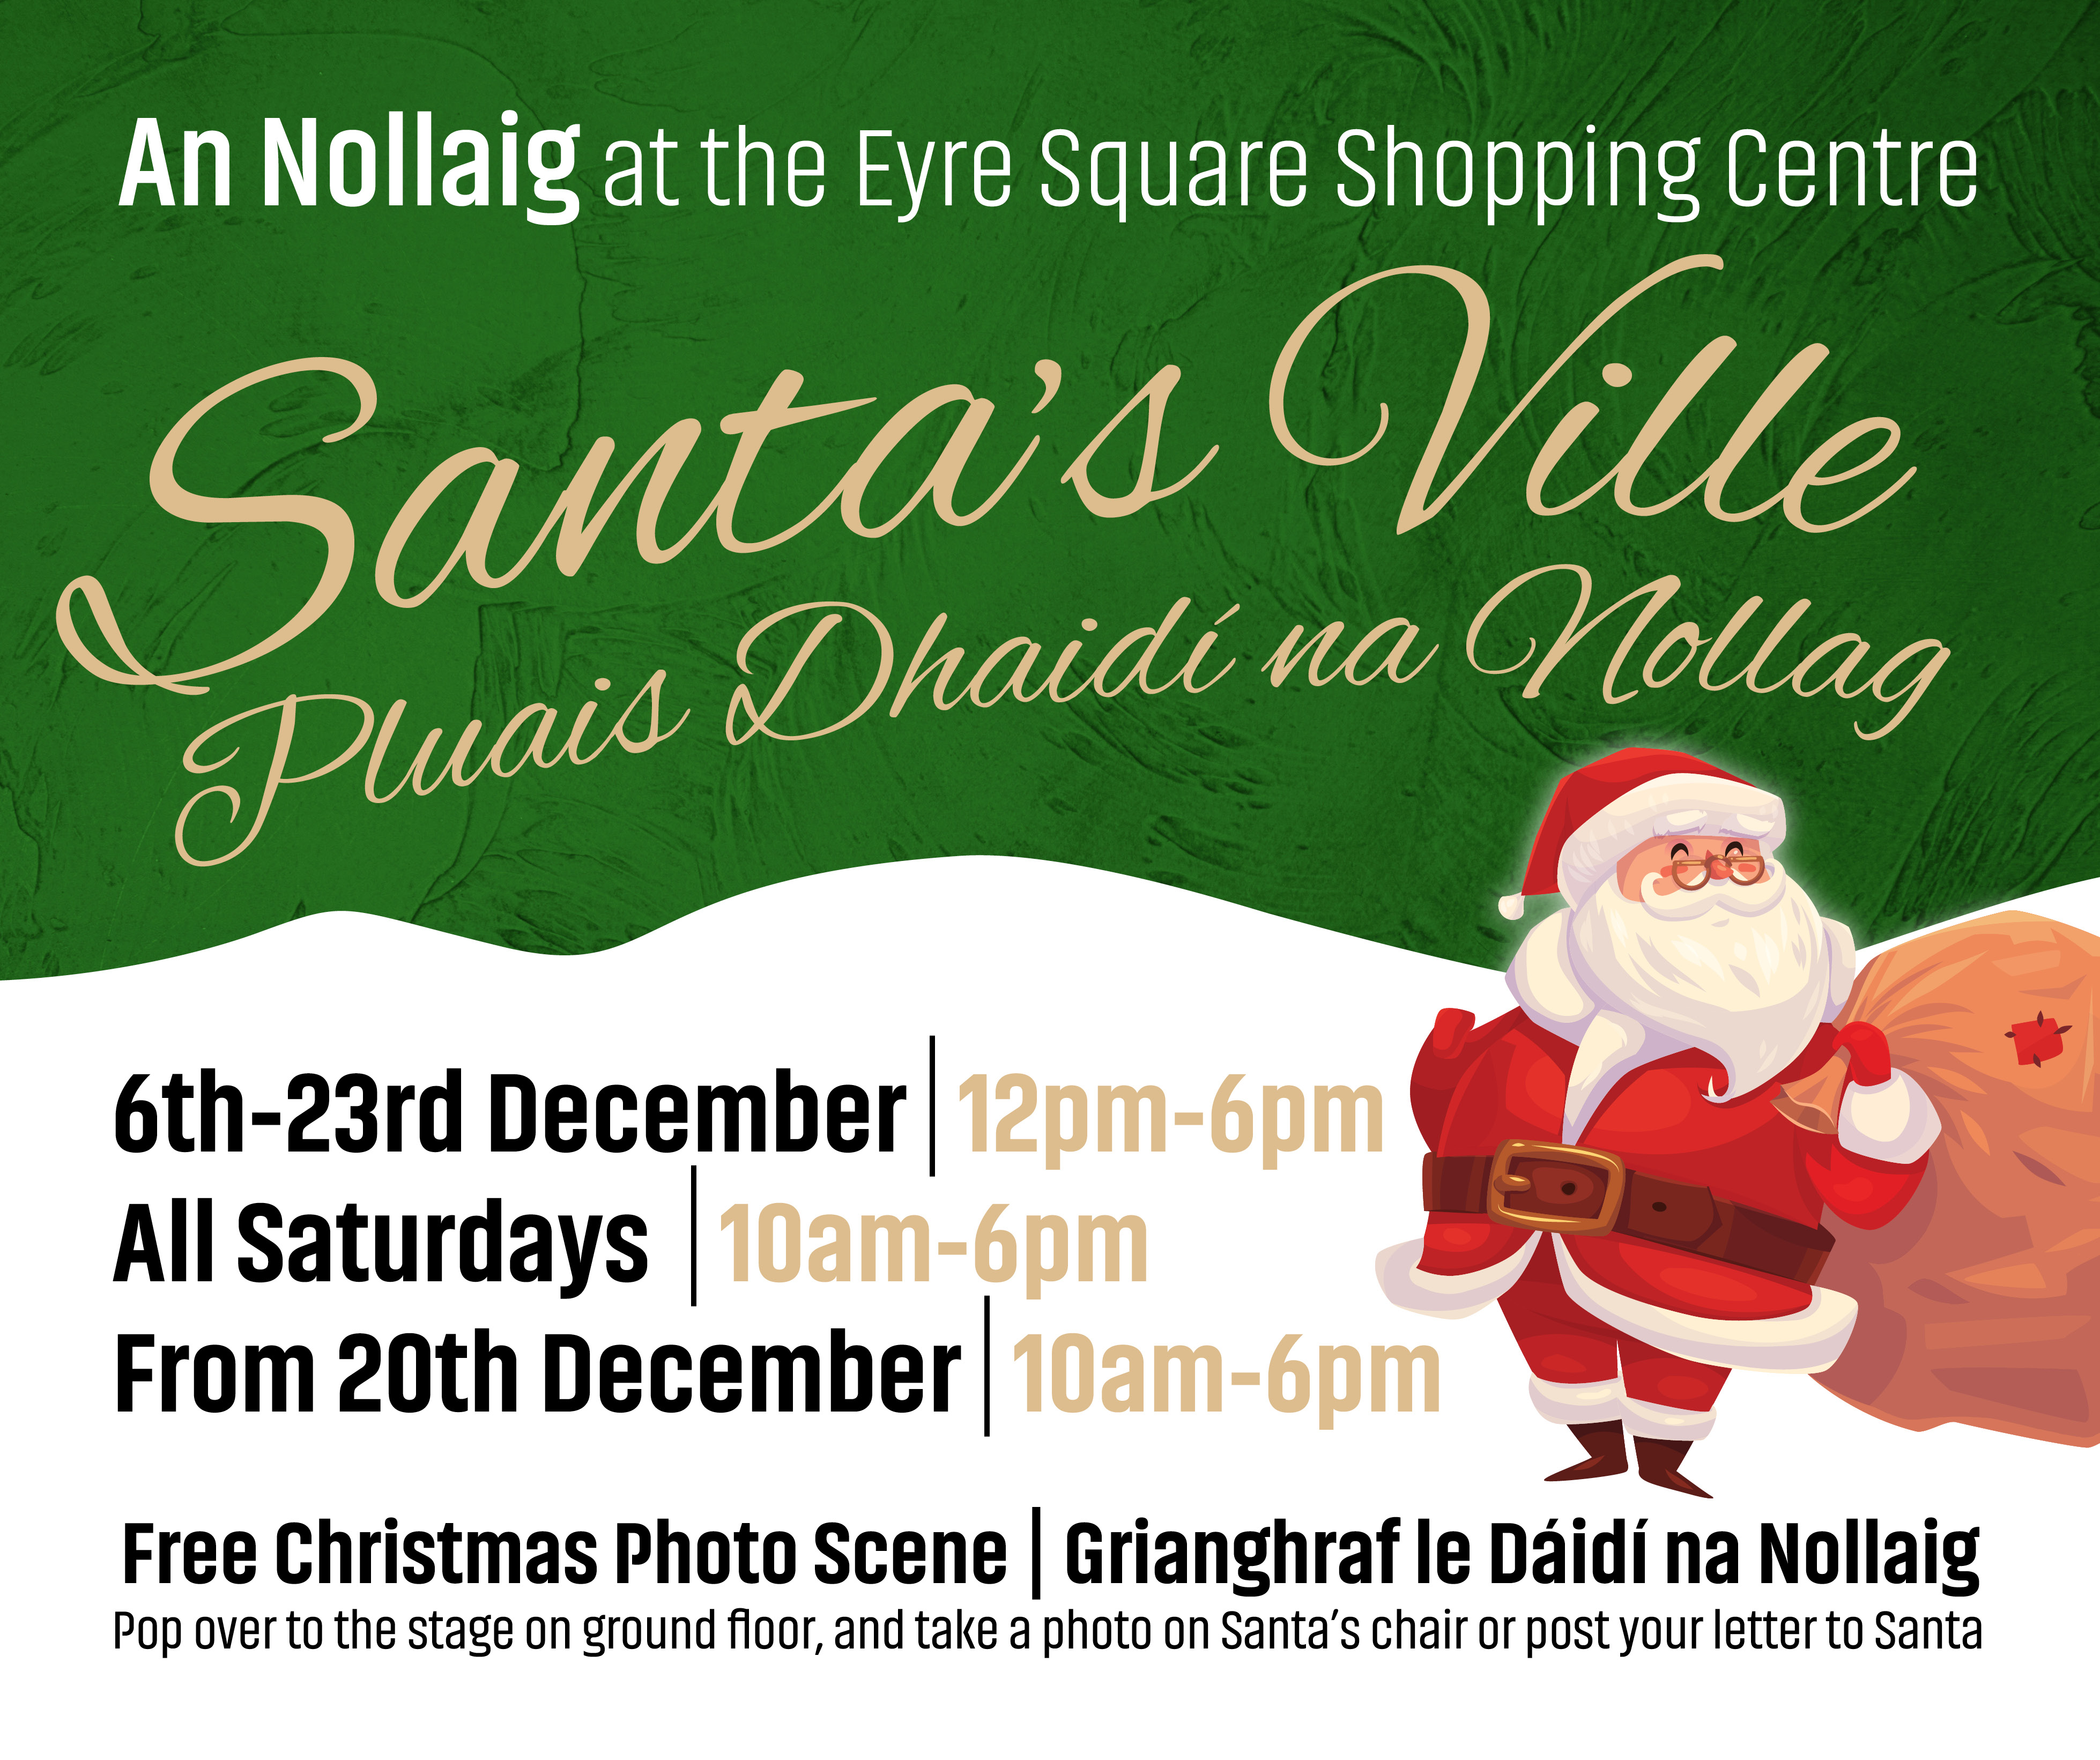 203524 EYRE SQUARE 940x788px Generic Christmas Facebook Graphic FEED POST